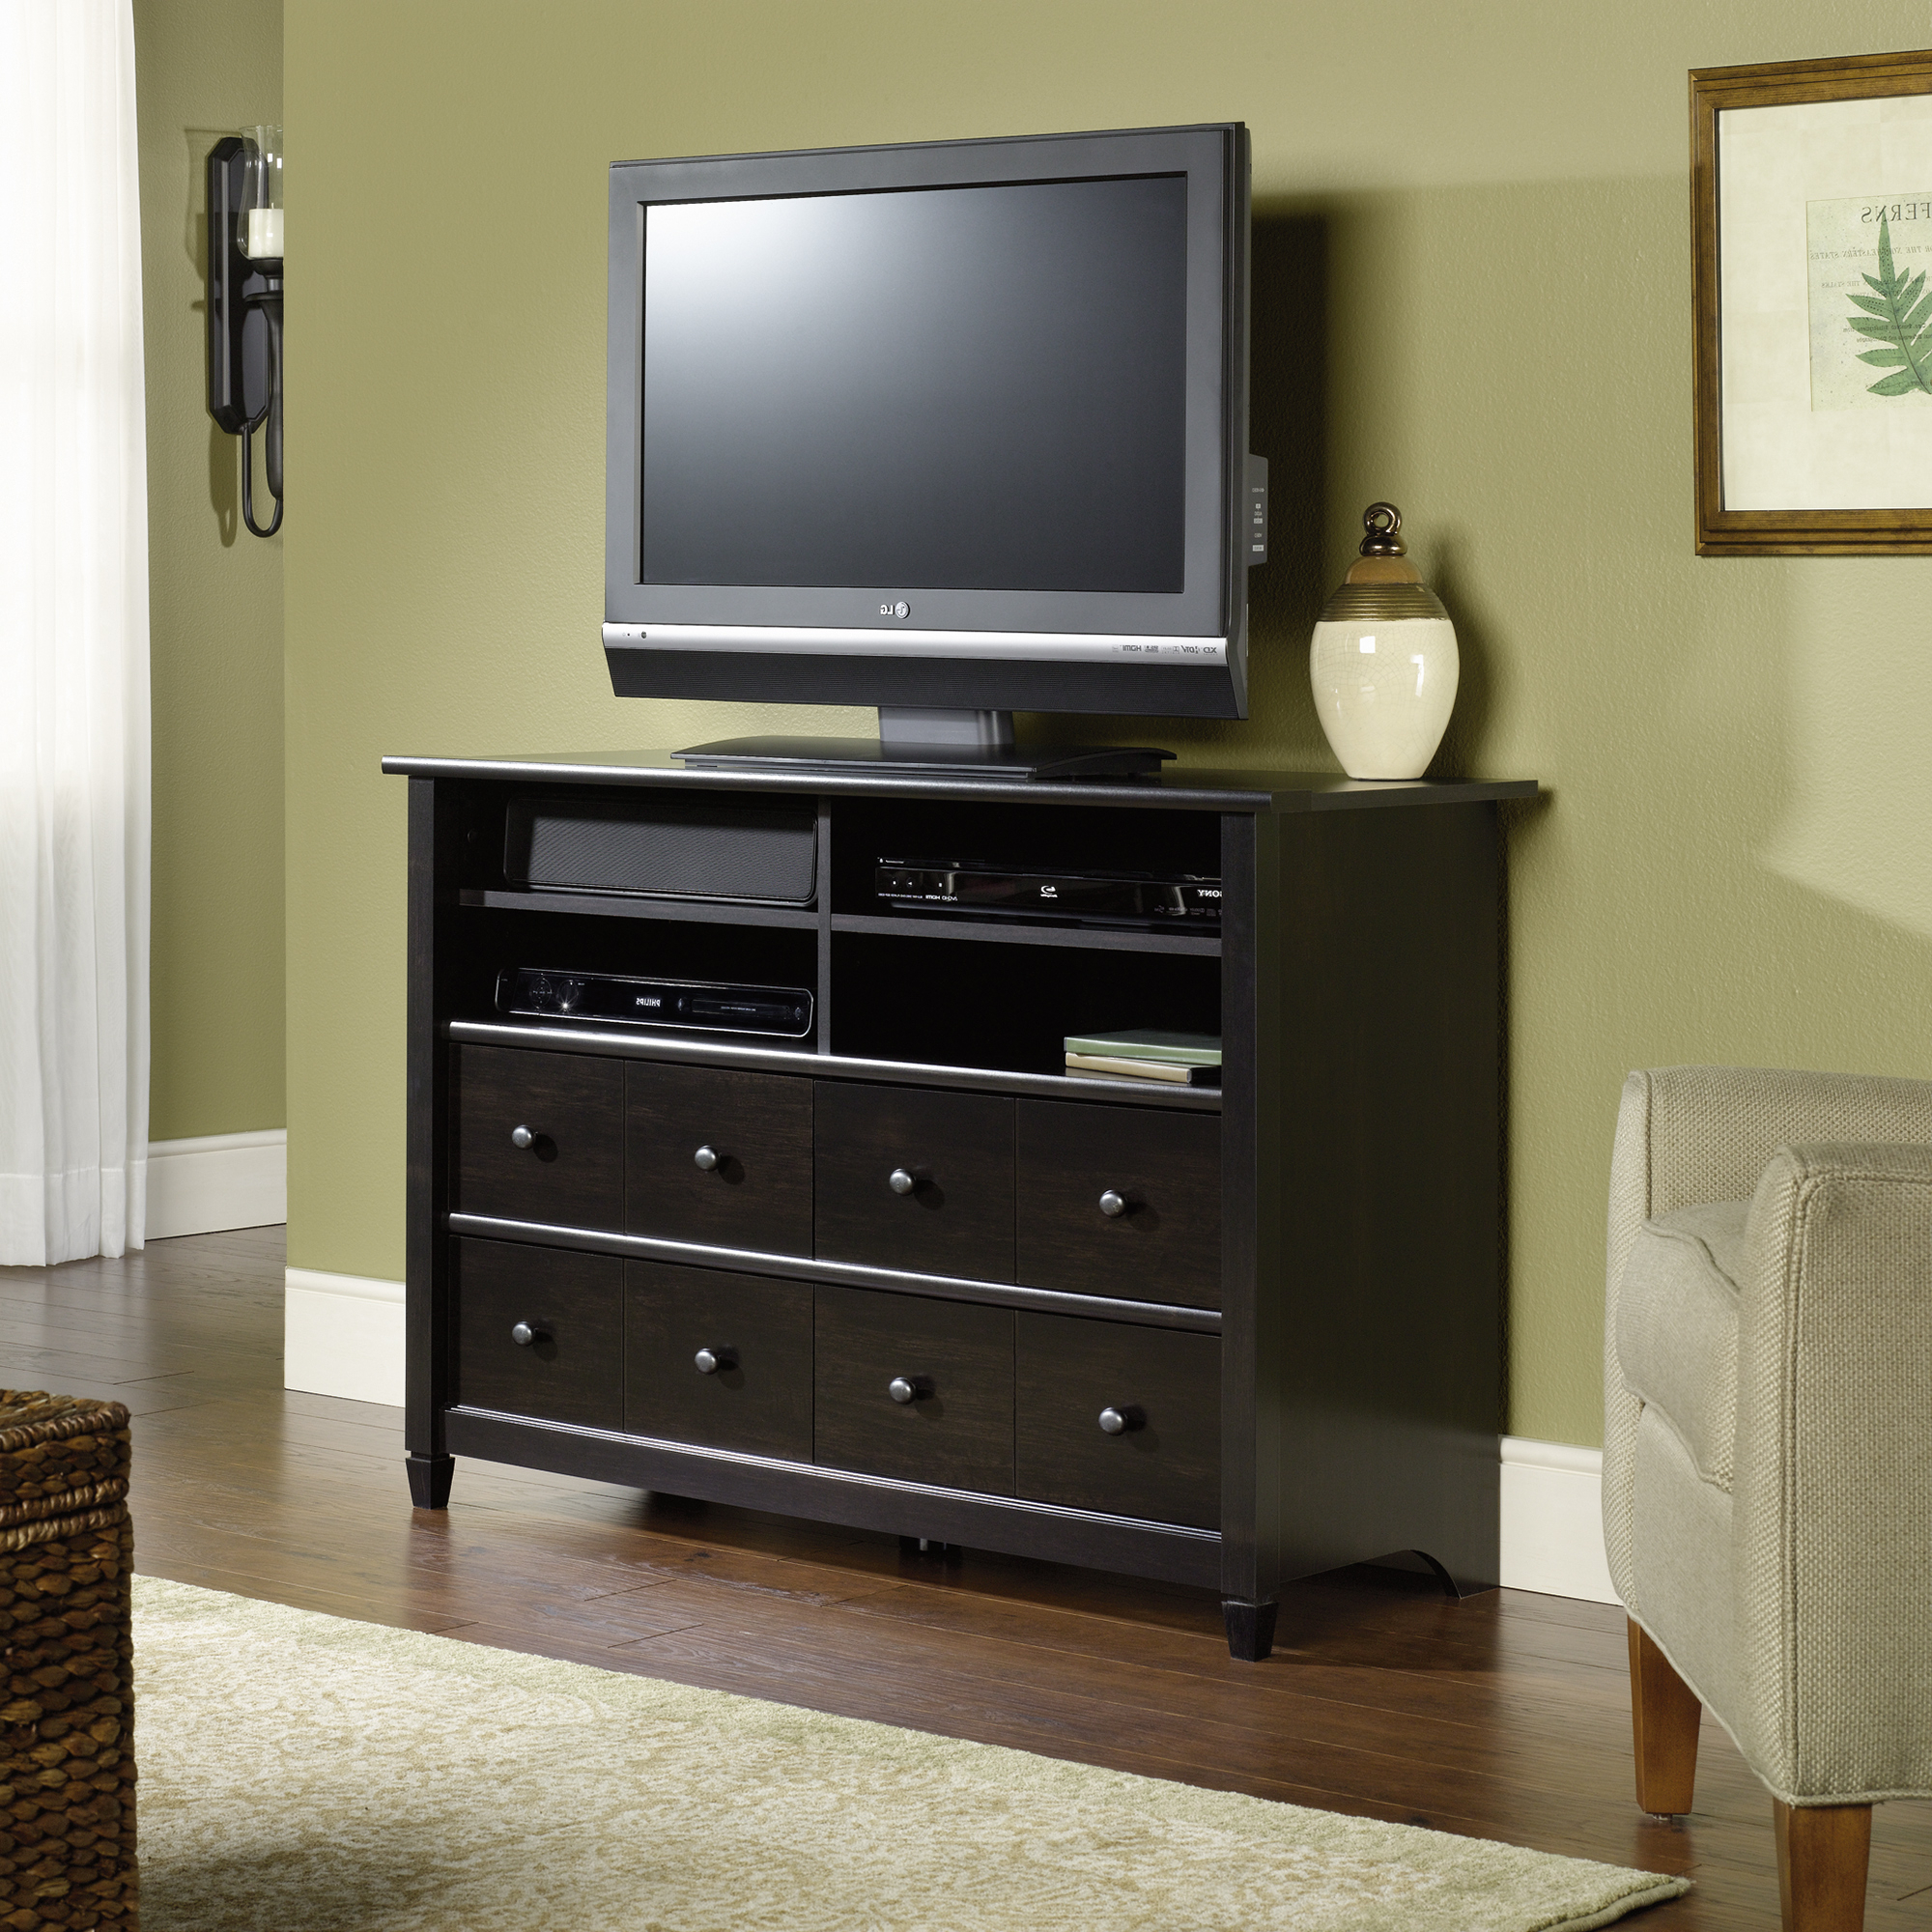 40 Inch Corner Tv Stand 36 Wide 38 30 High Tall Rca 3 Tier 90 In Most Current Tv Stands 38 Inches Wide (Gallery 3 of 20)